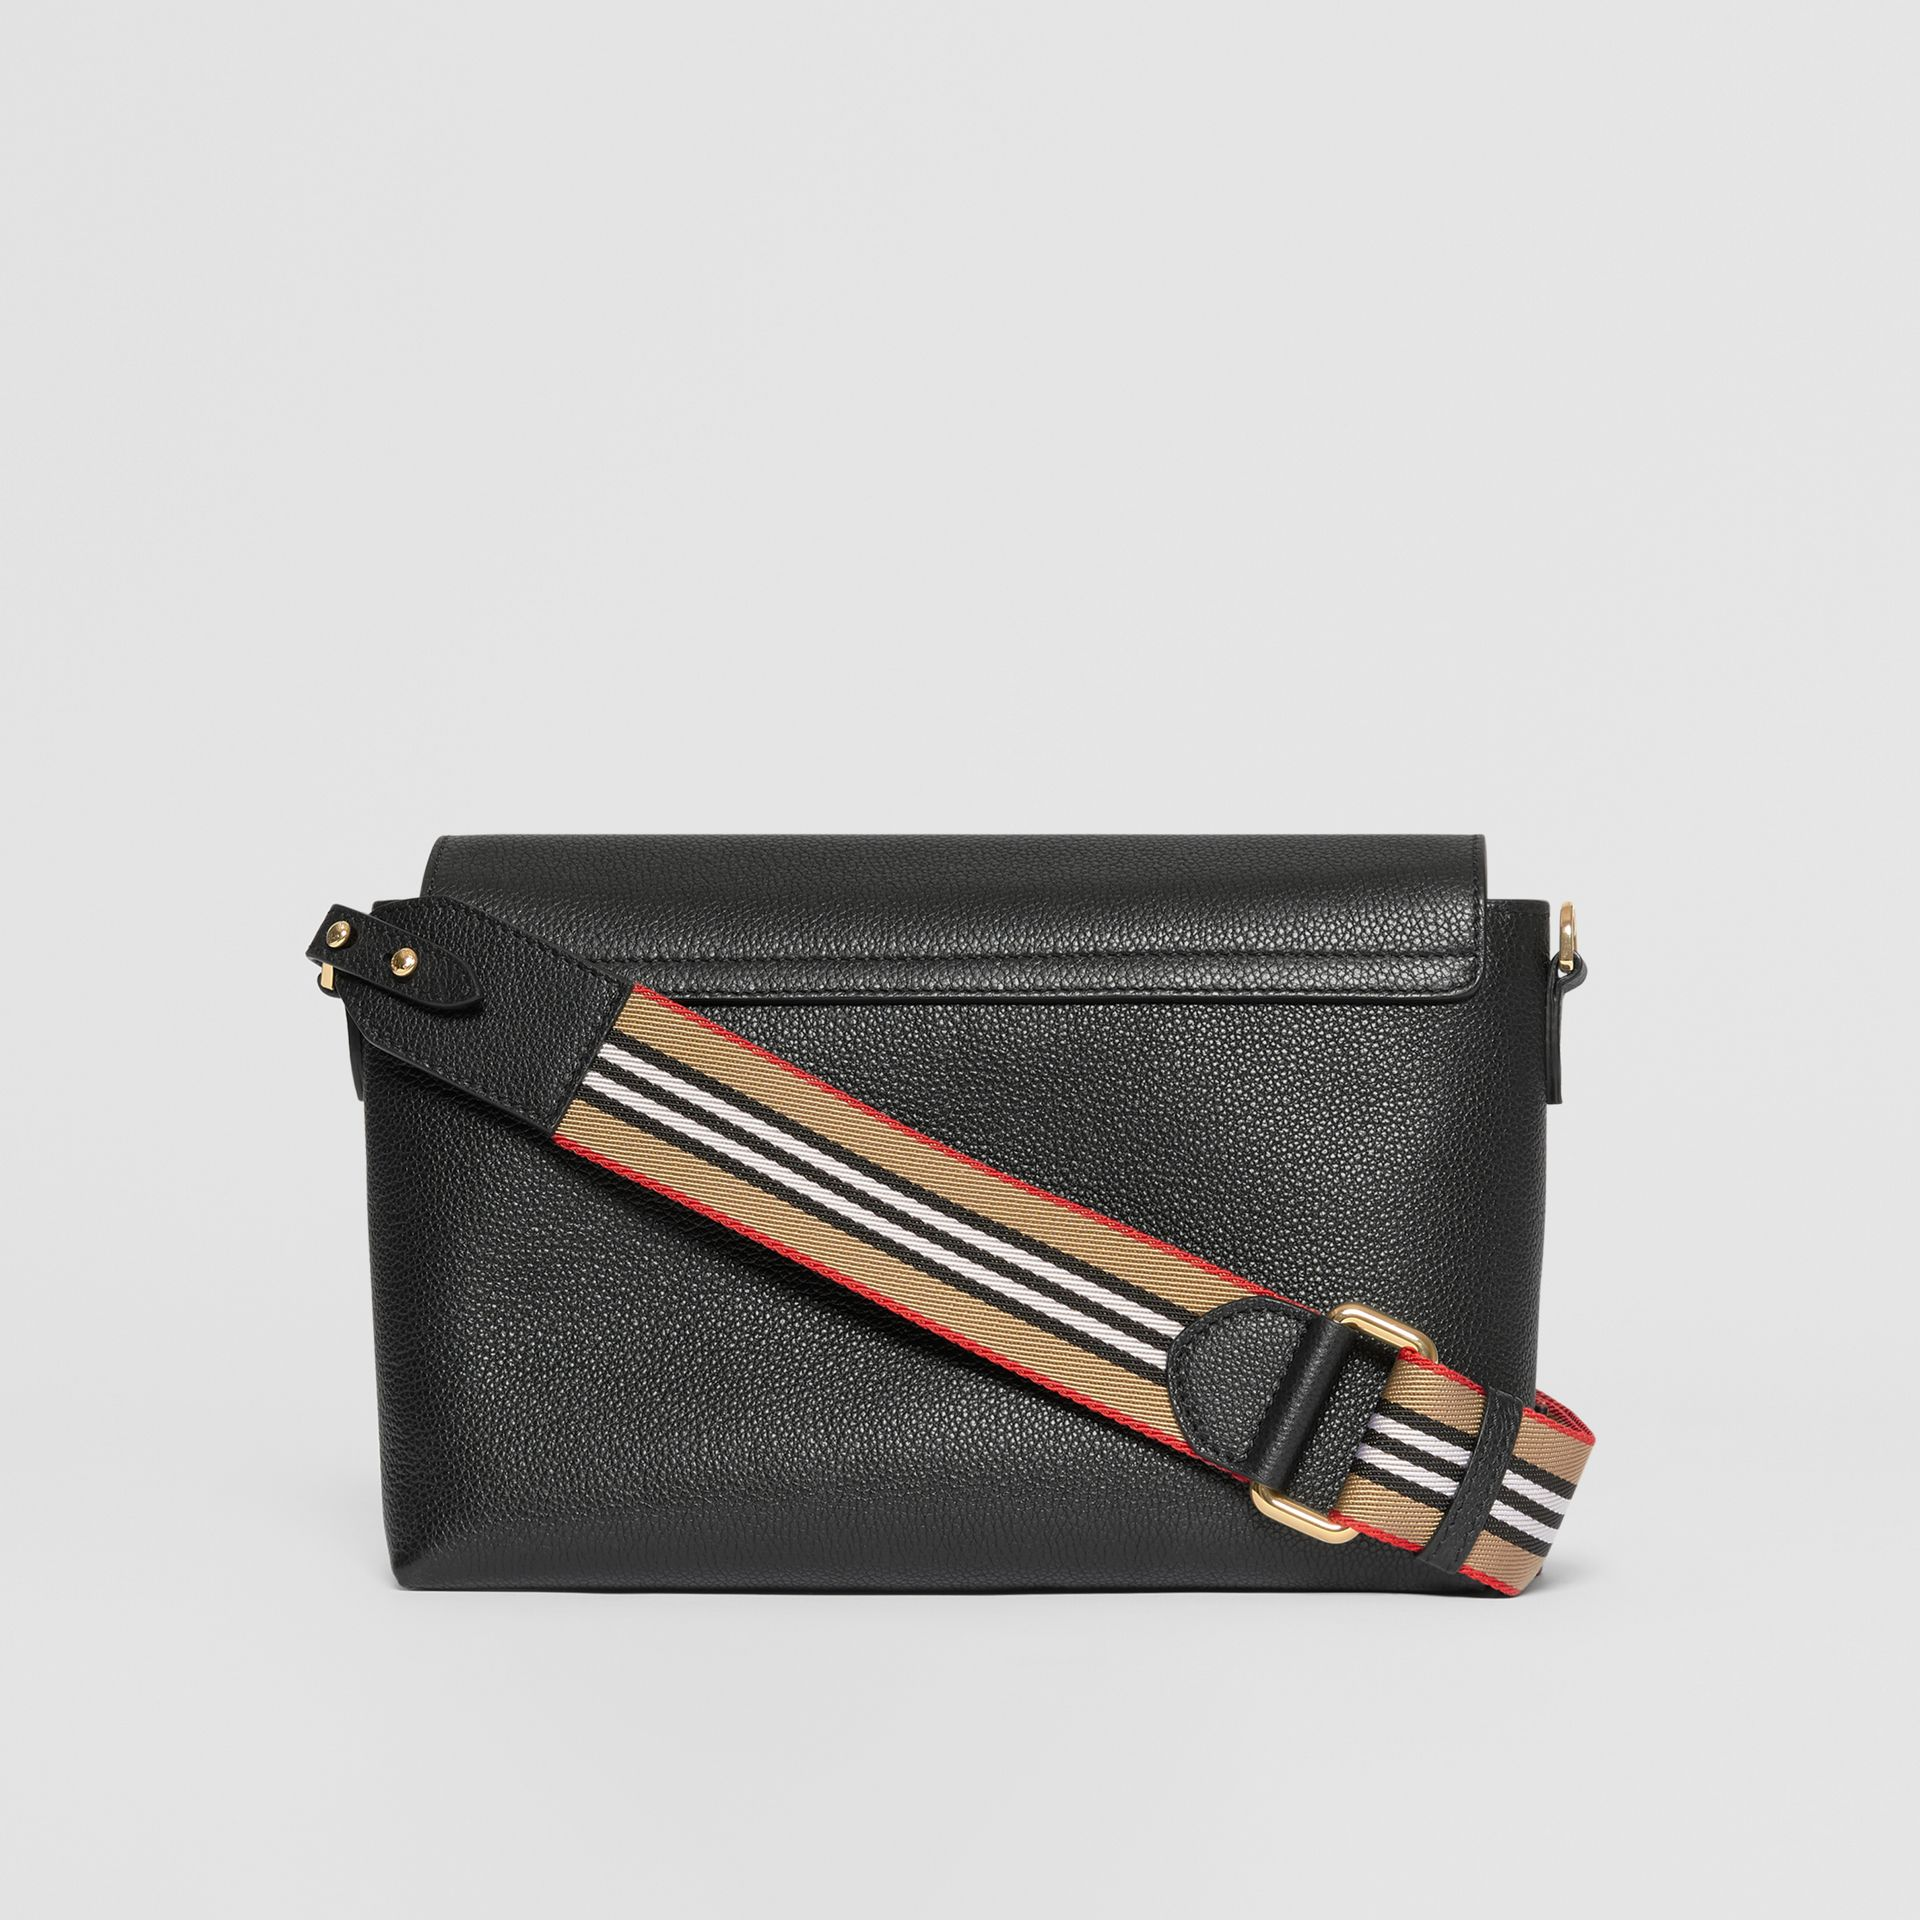 Grainy Leather Note Crossbody Bag in Black - Women | Burberry United Kingdom - gallery image 7